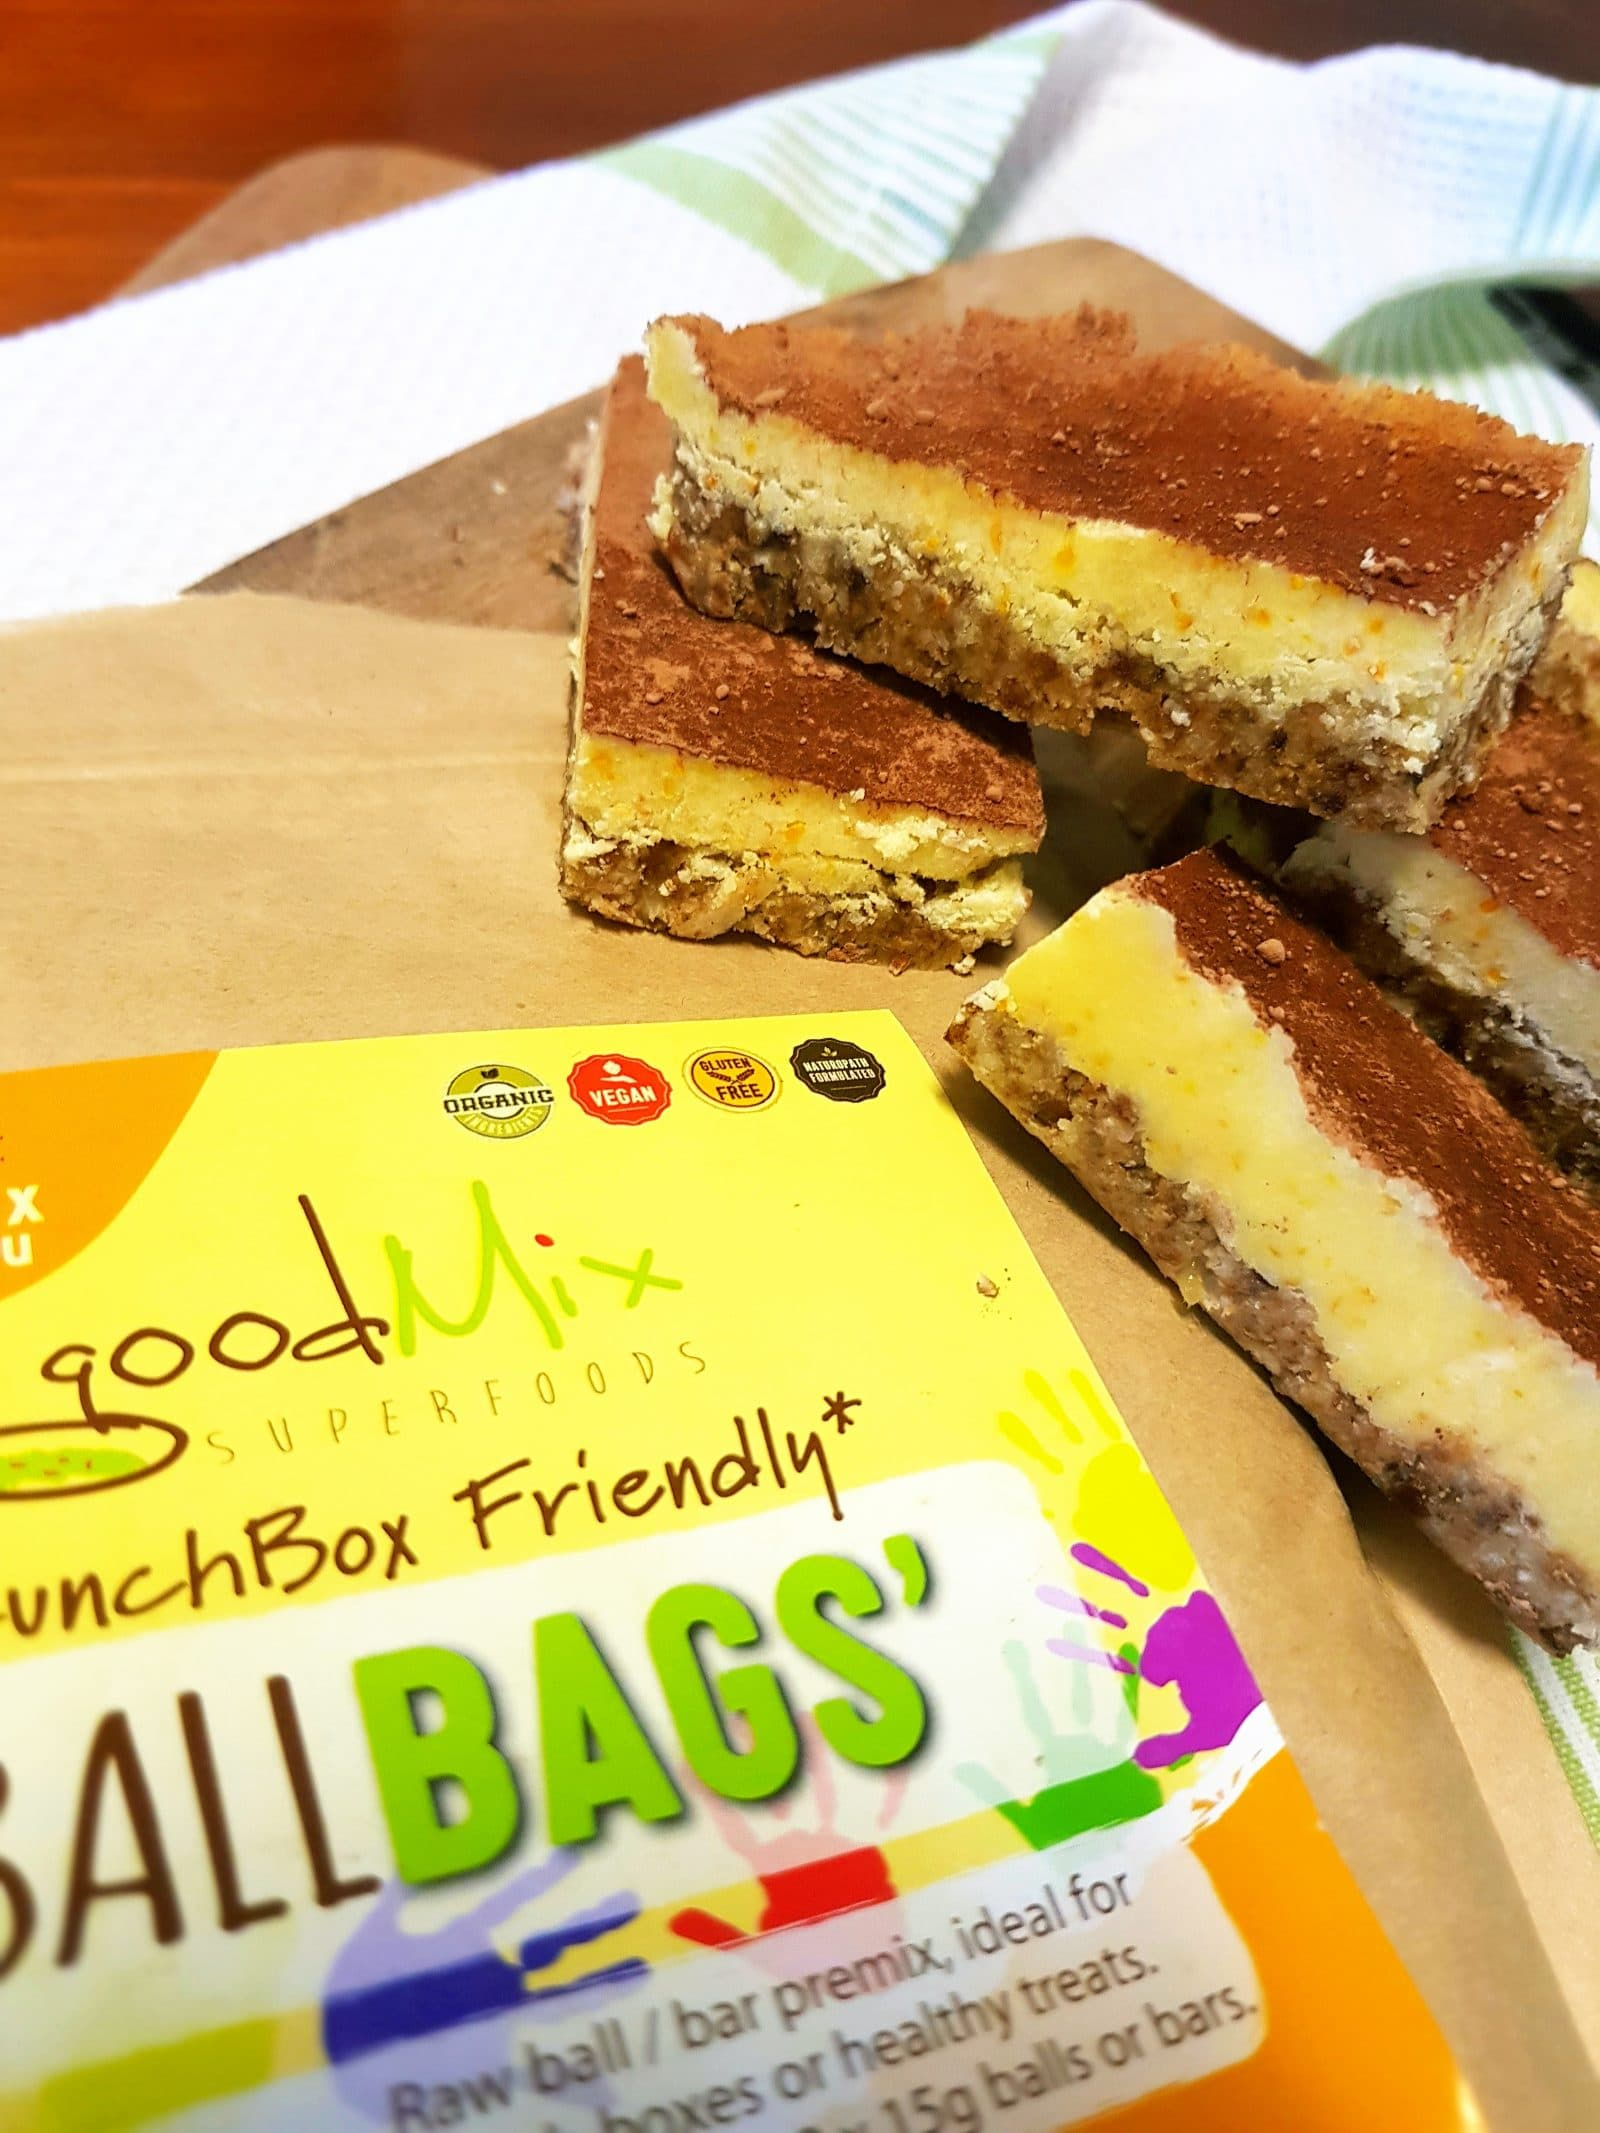 goodMix zesty lunchbox bars